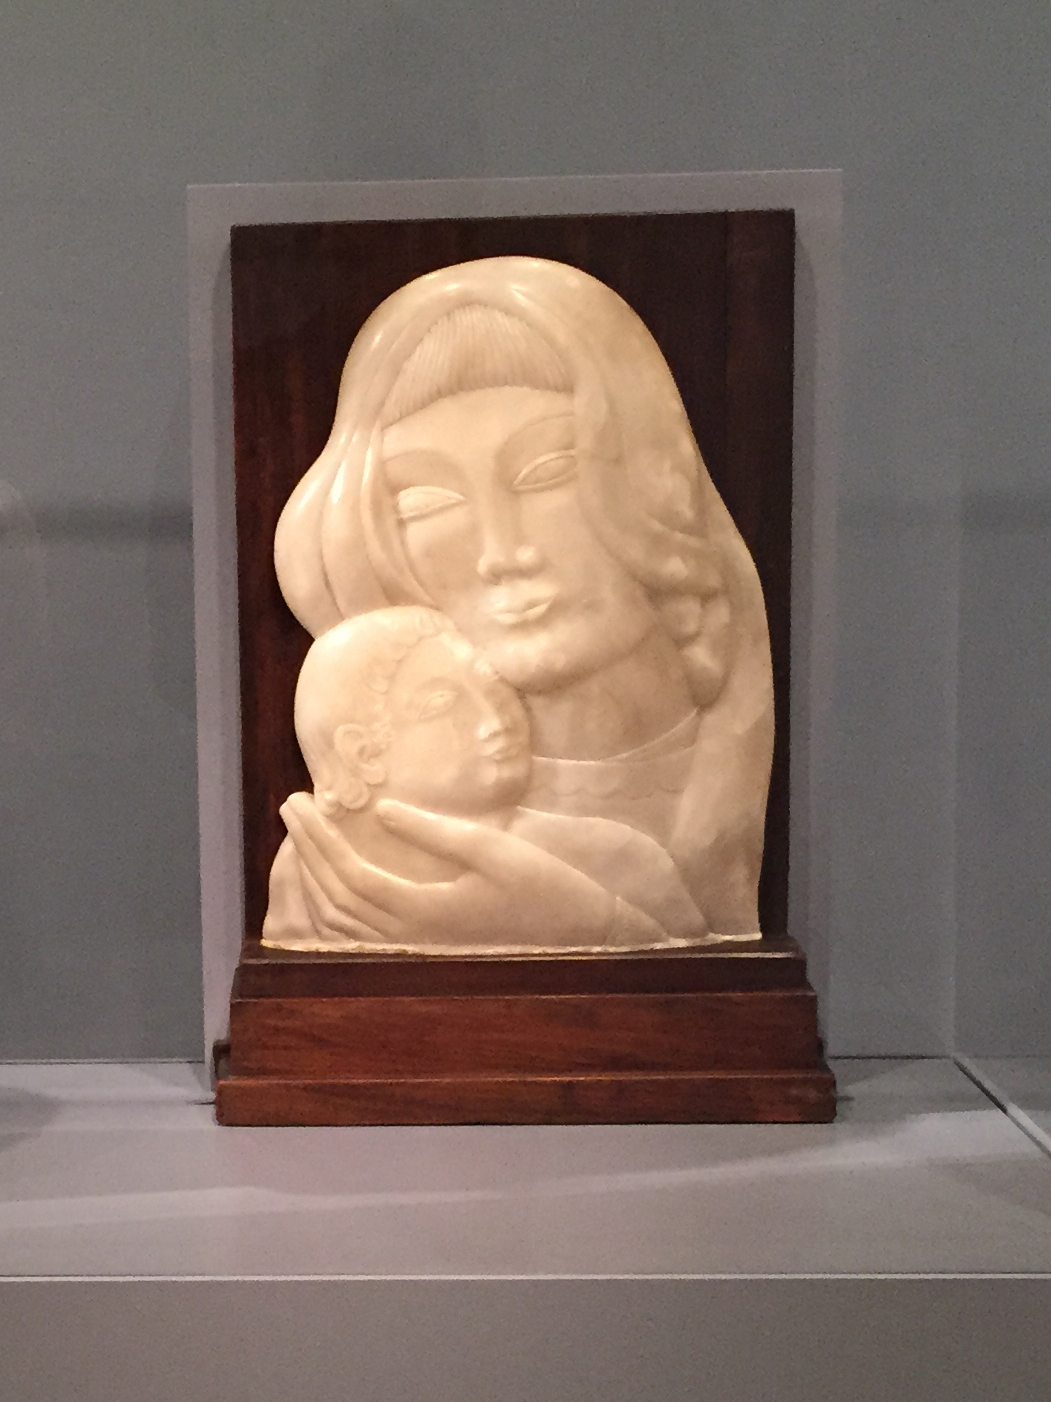 Mother and Child, ca. 1924, alabaster relief in wood frame, Smithsonian American Art Museum, Gift of John N. Stern, 1996.89A-B